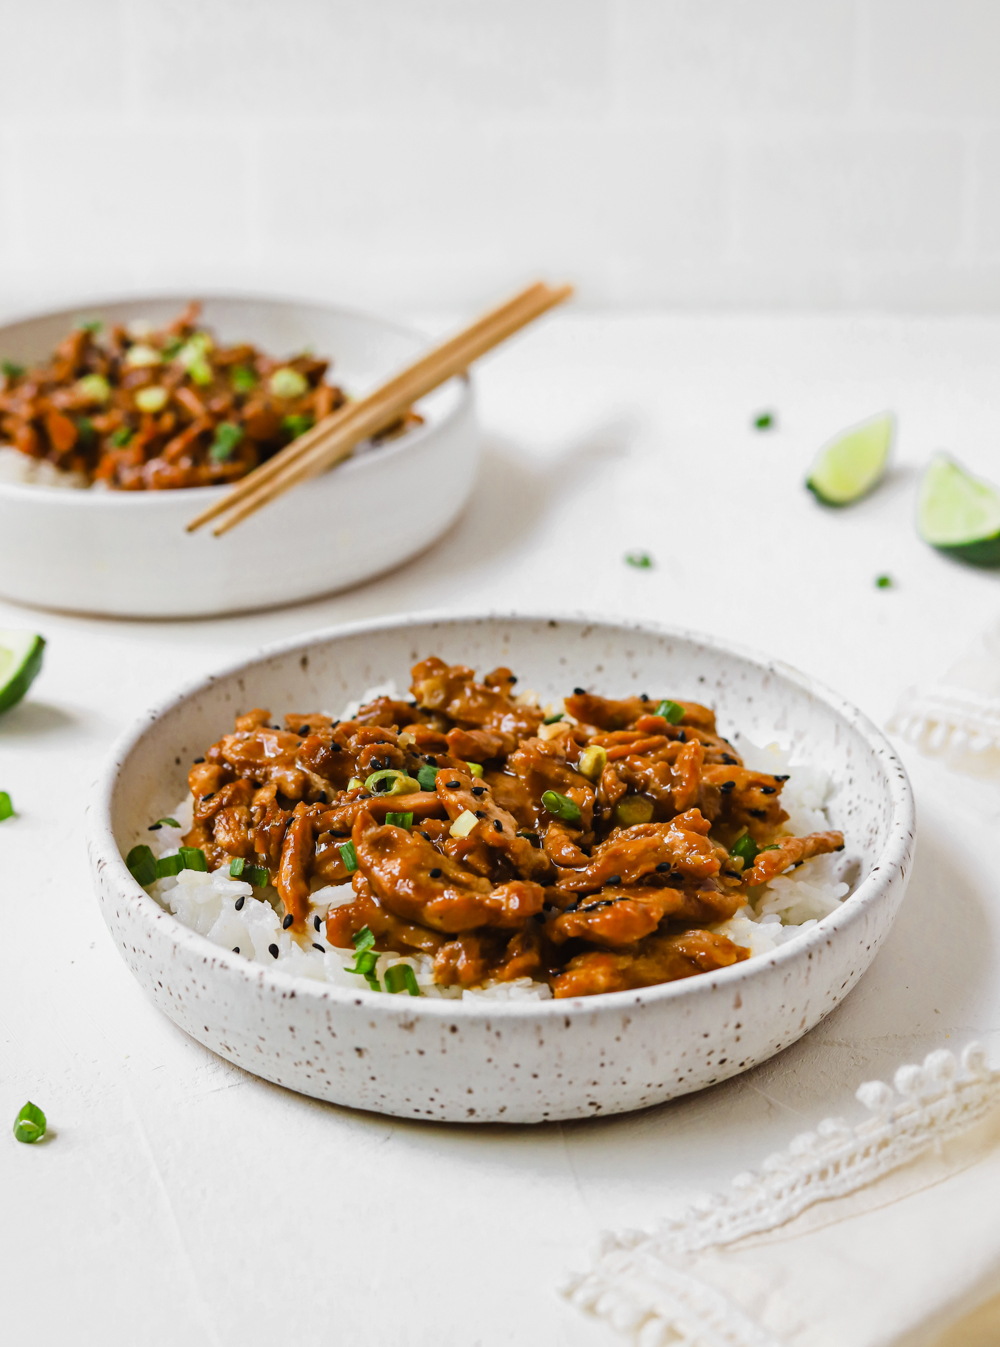 Bowl of vegan teriyaki soy curls topped with black sesame seeds and chopped green onions.